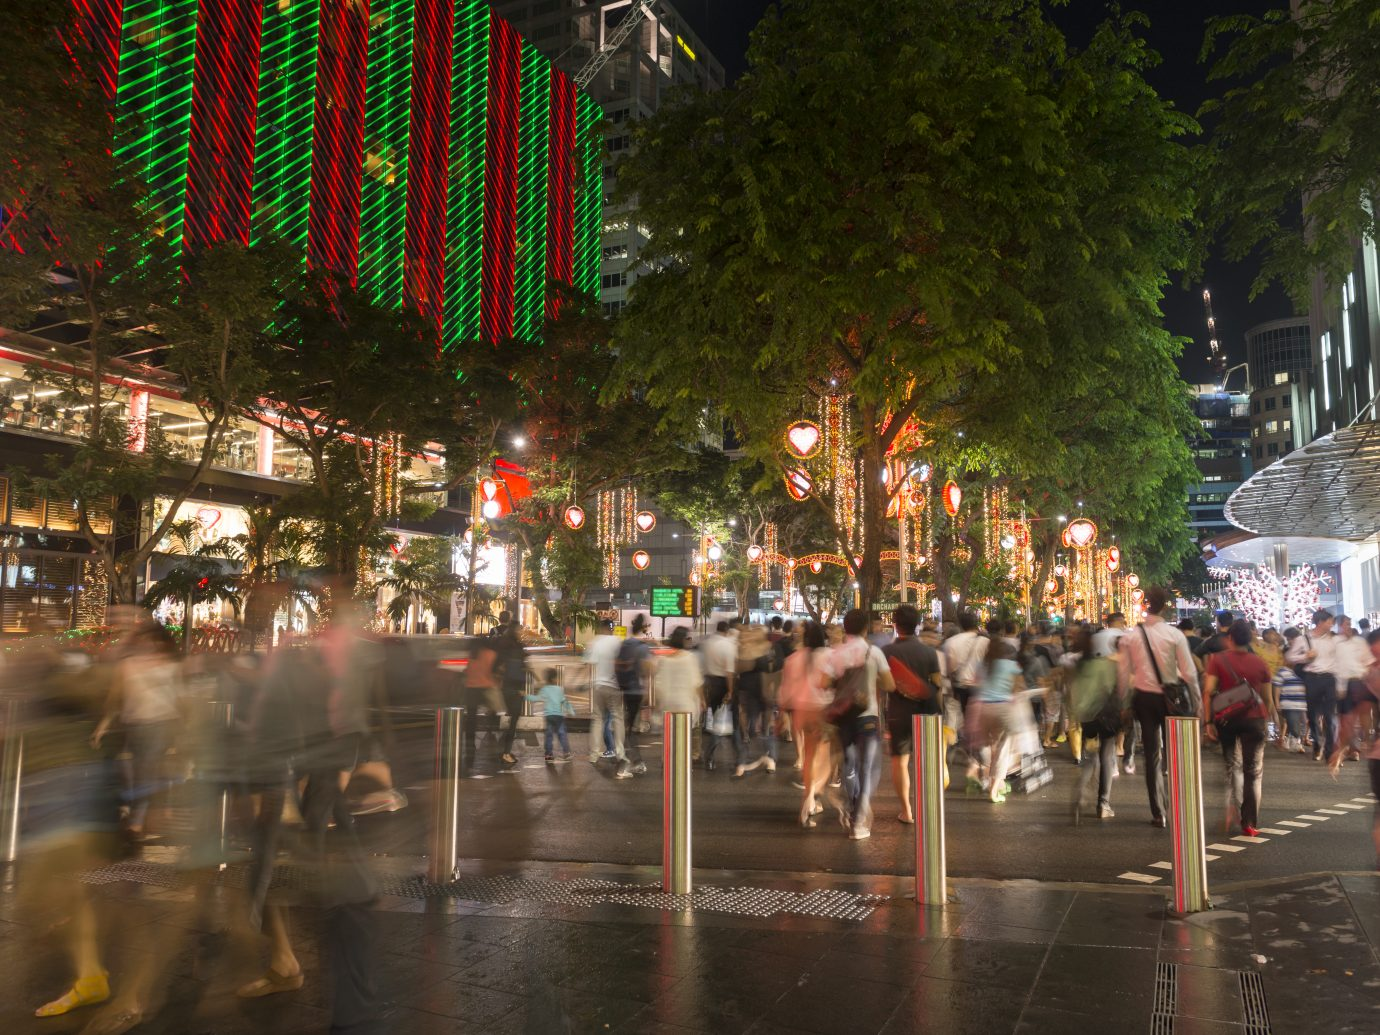 """""""Shoppers, tourists, walking on the pedestrian crossing in the night after a rain, enjoying the view of Christmas light up along Orchard Road. Singapore Shopping Centres, hotels and the street are light up for Christmas during this festive season."""""""